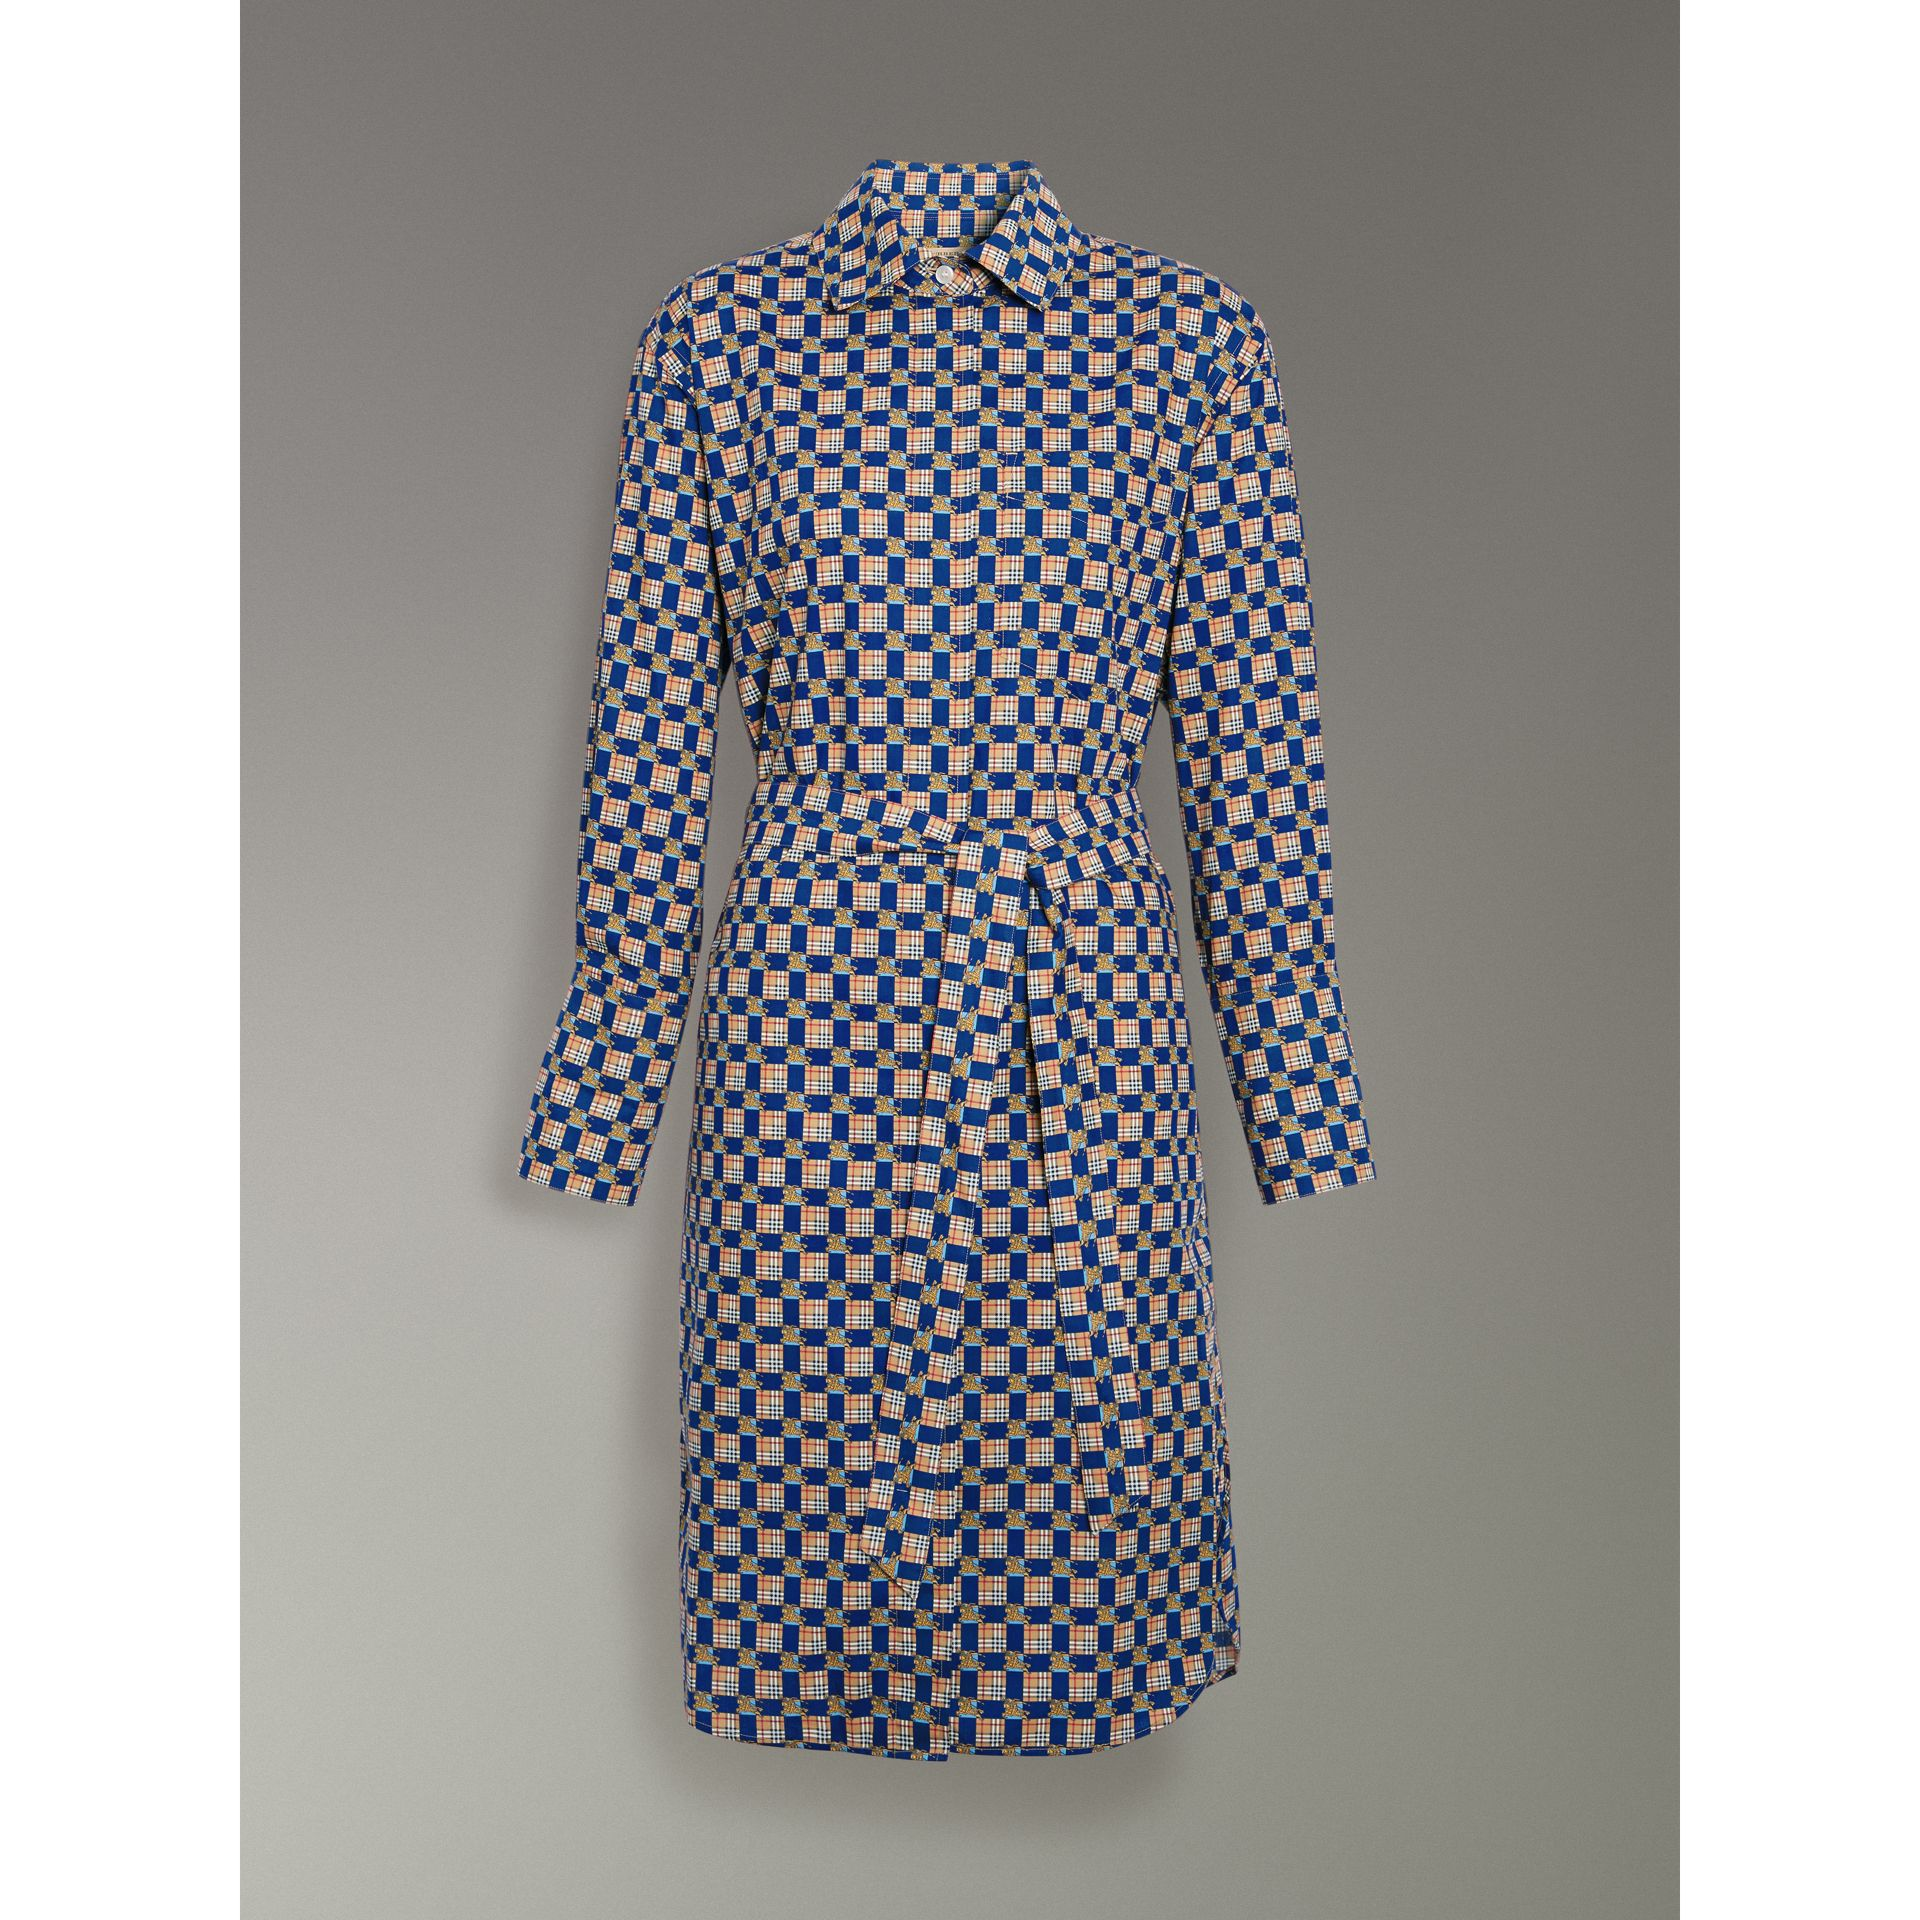 Tiled Archive Print Cotton Shirt Dress in Navy - Women | Burberry United States - gallery image 3